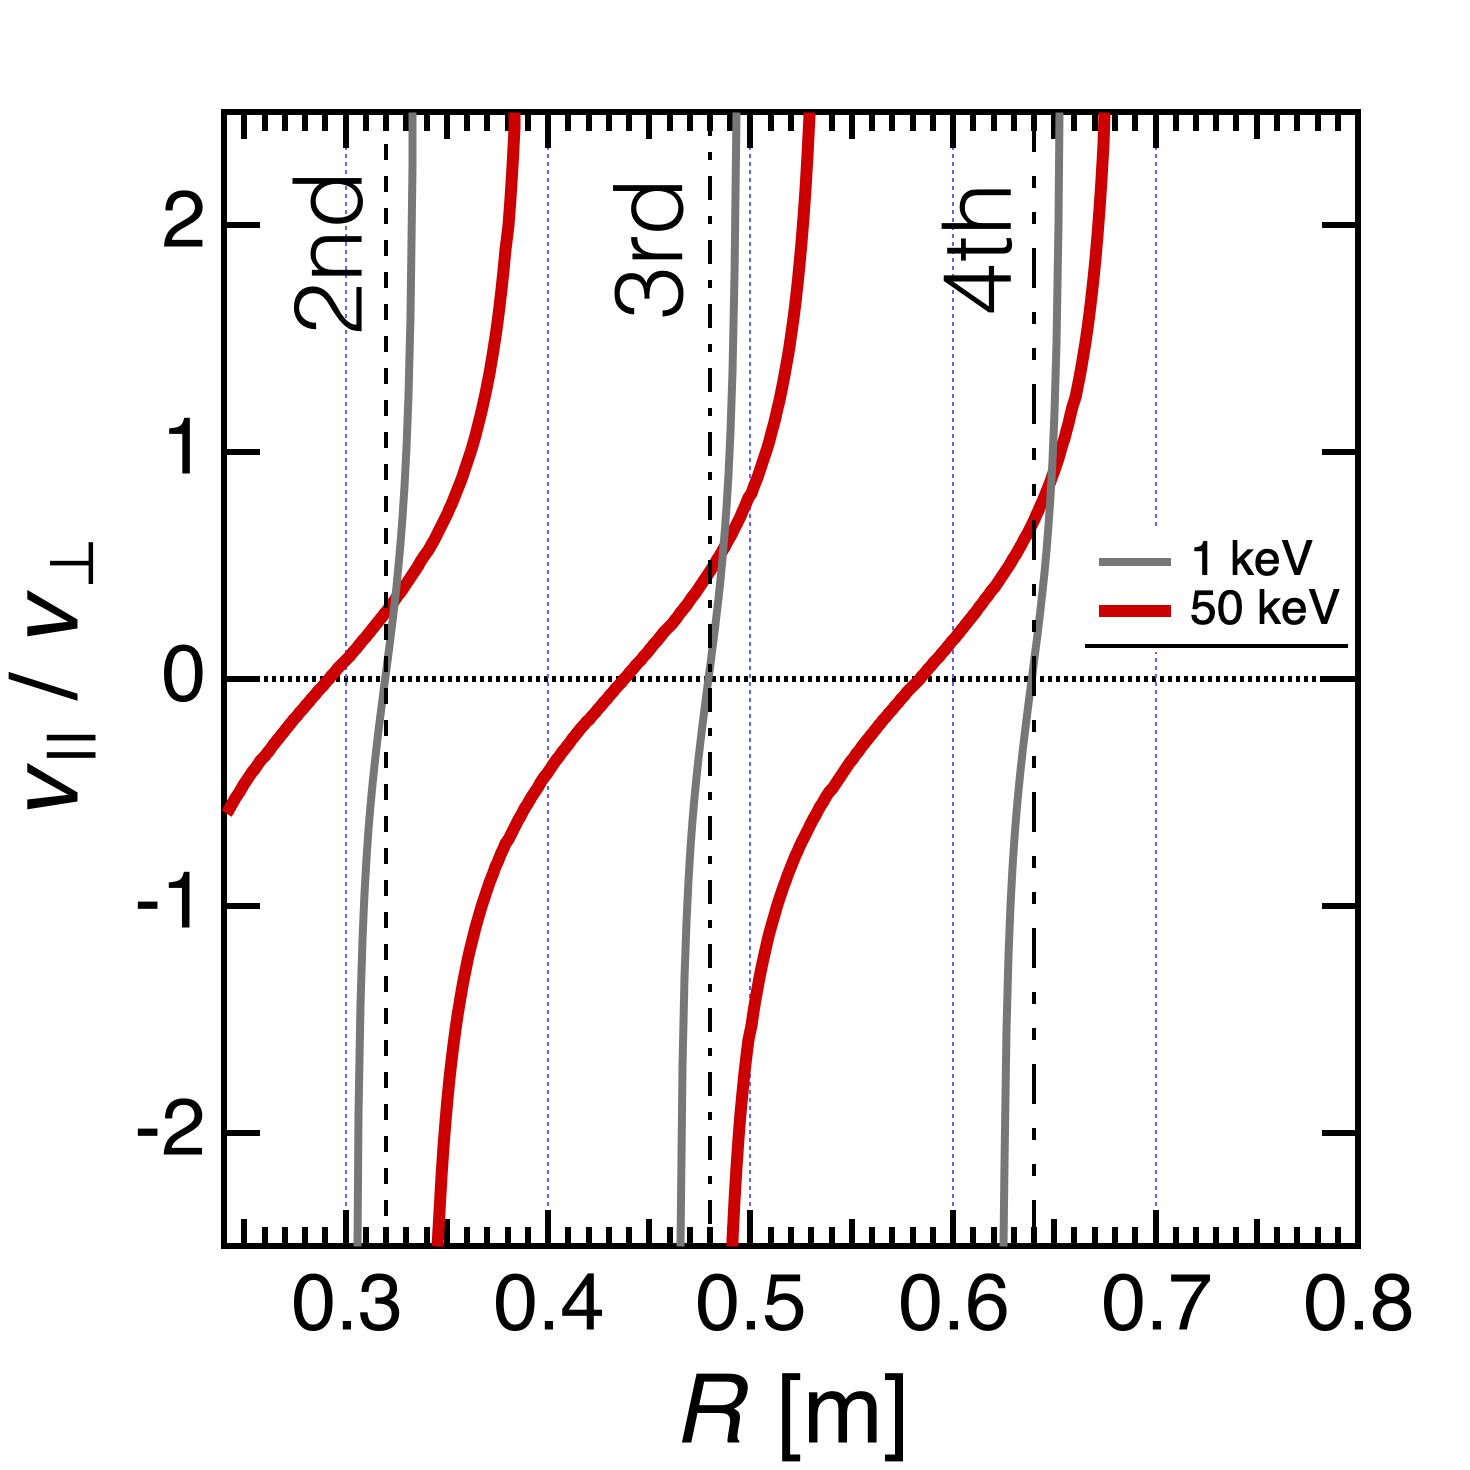 Radial profile of the velocity pitch ($v_{//}$ / $v_{\perp}$) of 1 keV (gray) and 50 keV (red) electrons satisfying $n$th harmonic relativistic Doppler resonance conditions. The inner limiter is located at $R$ = 0.23 m.